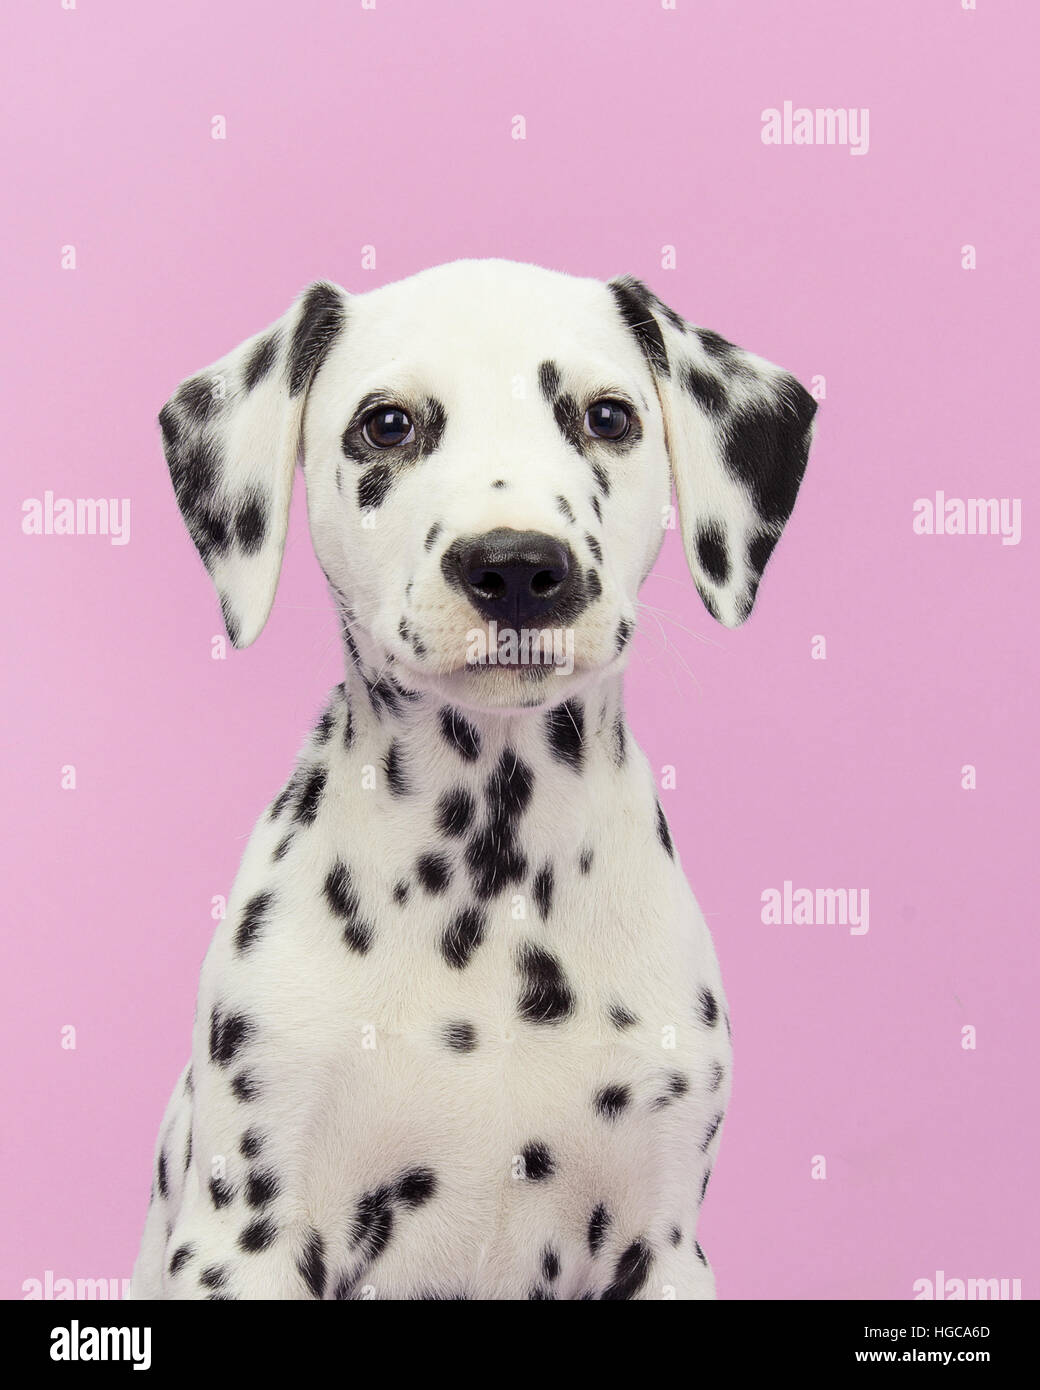 Cute dalmatian puppy portrait facing the camera on a pink background - Stock Image